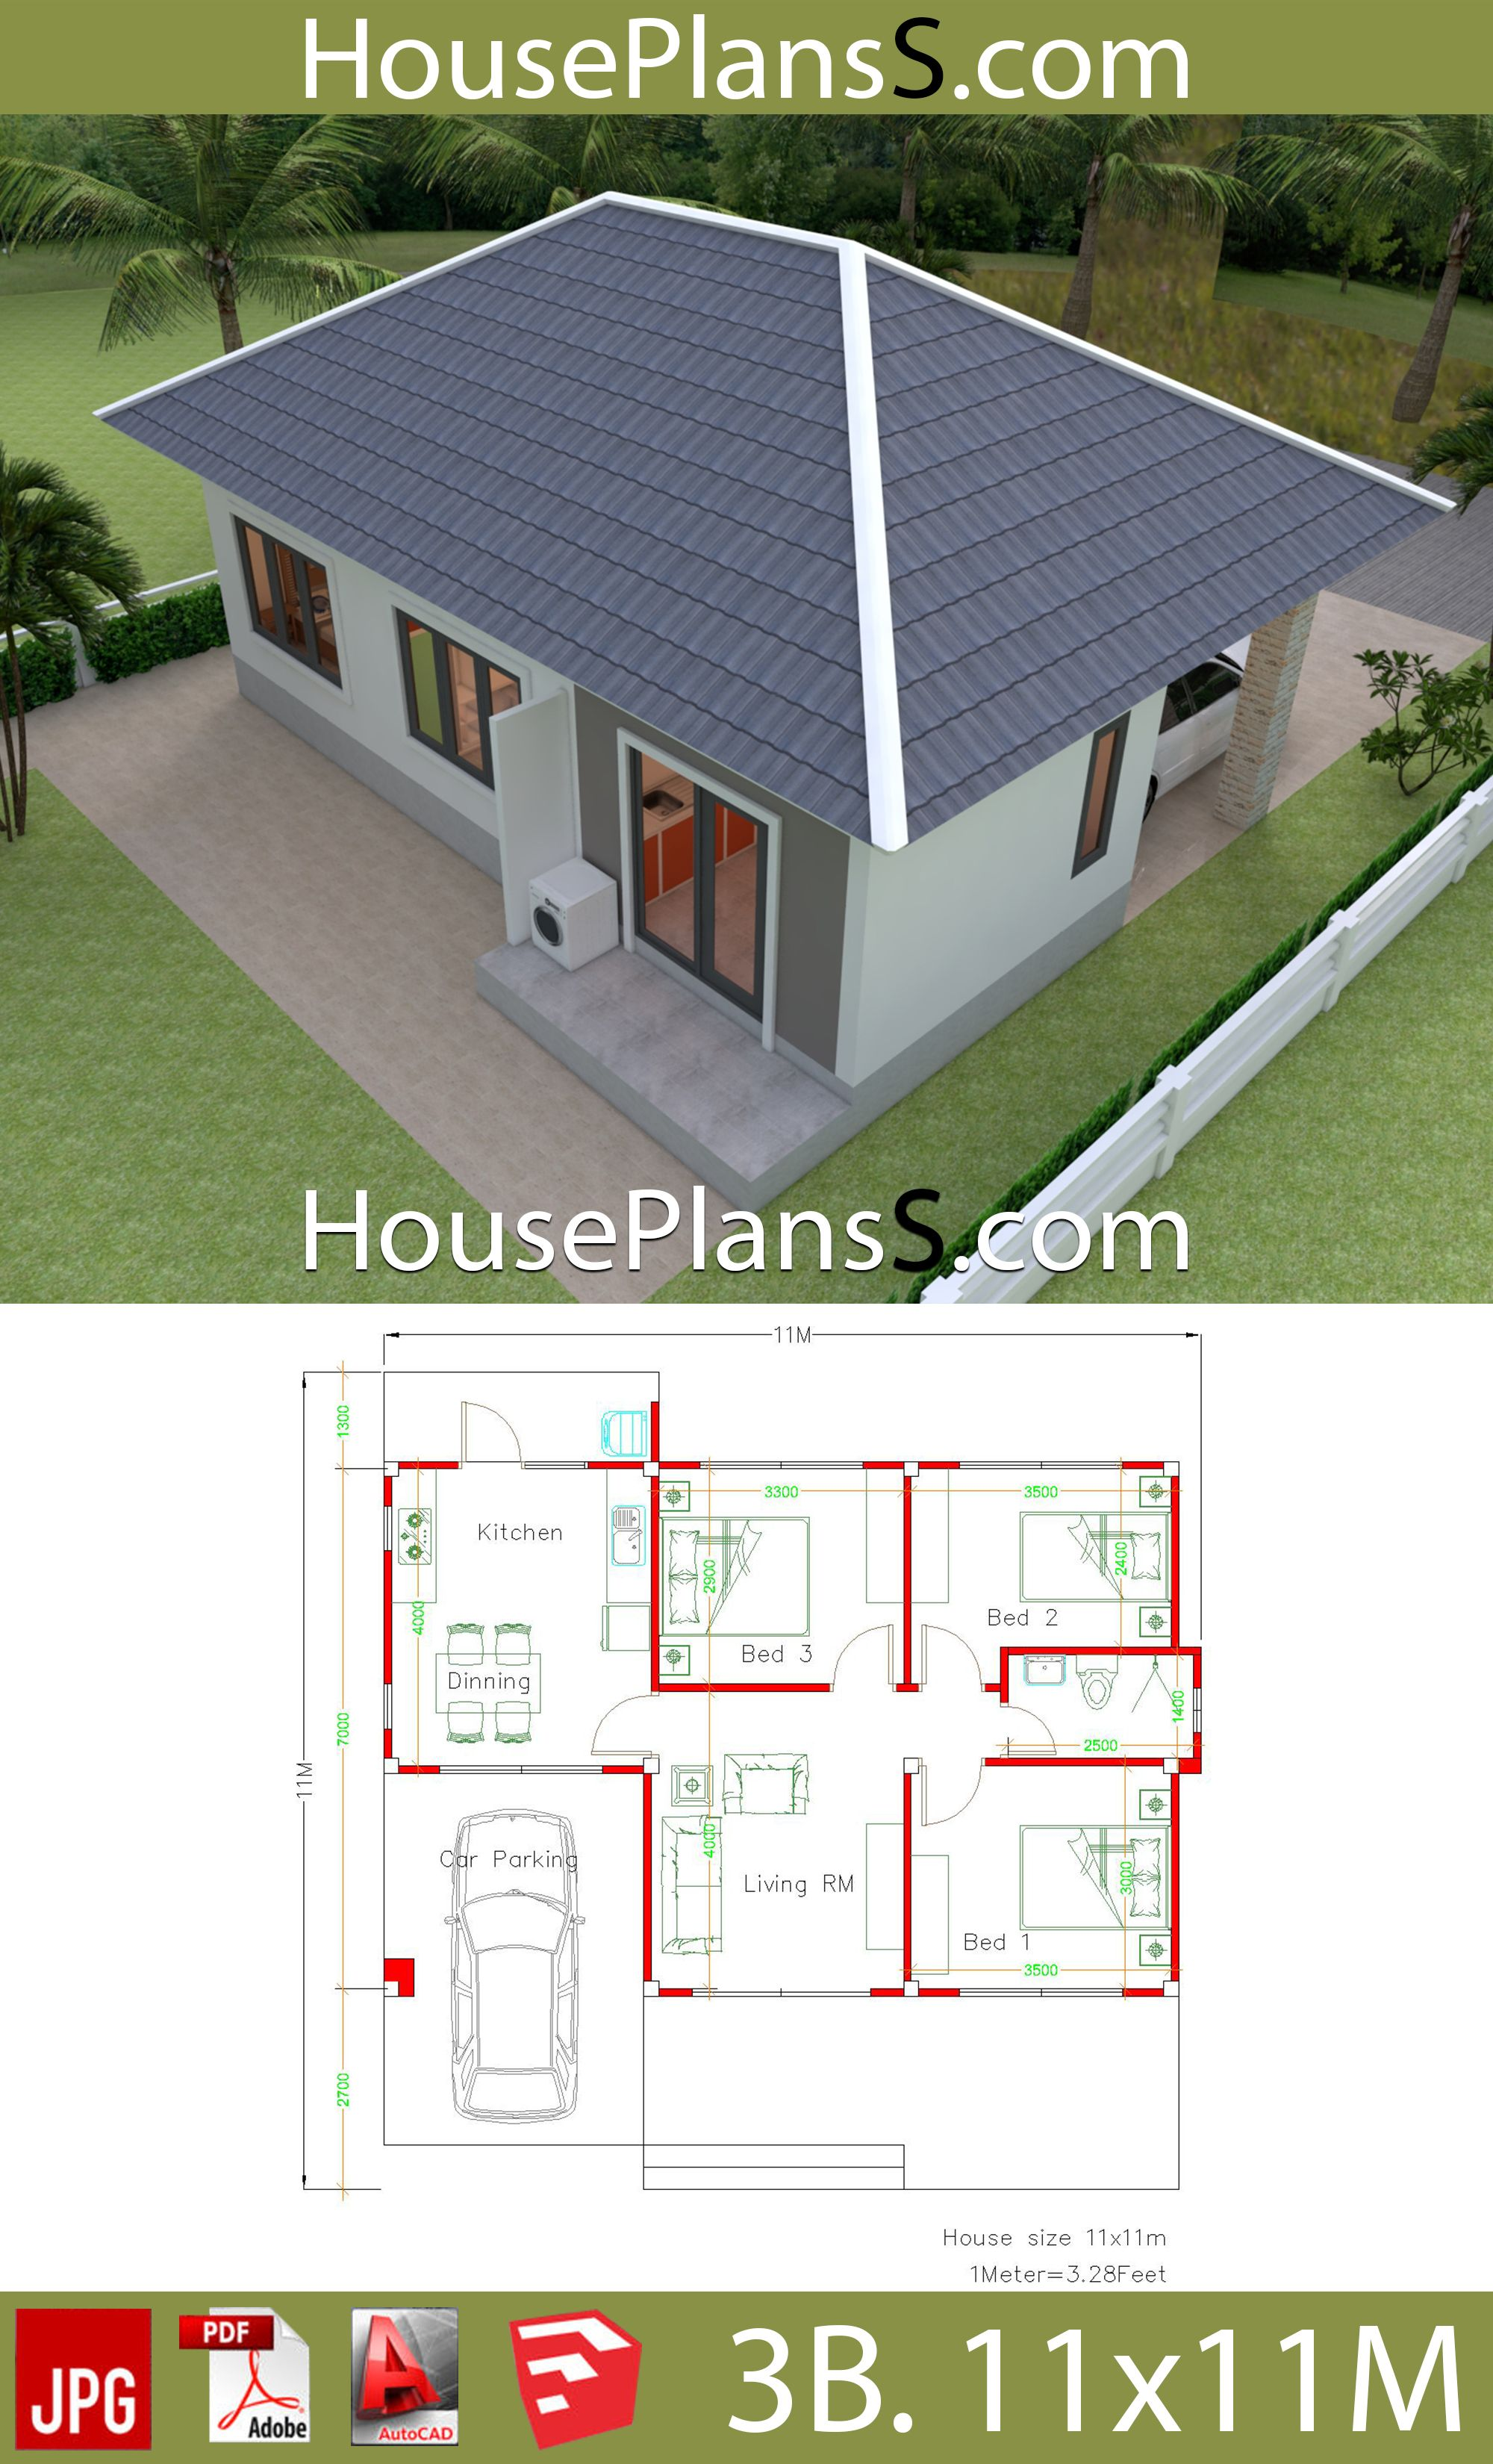 Simple House Design Plans 11x11 With 3 Bedrooms Full Plans Simple House Design Simple House Plans House Plans